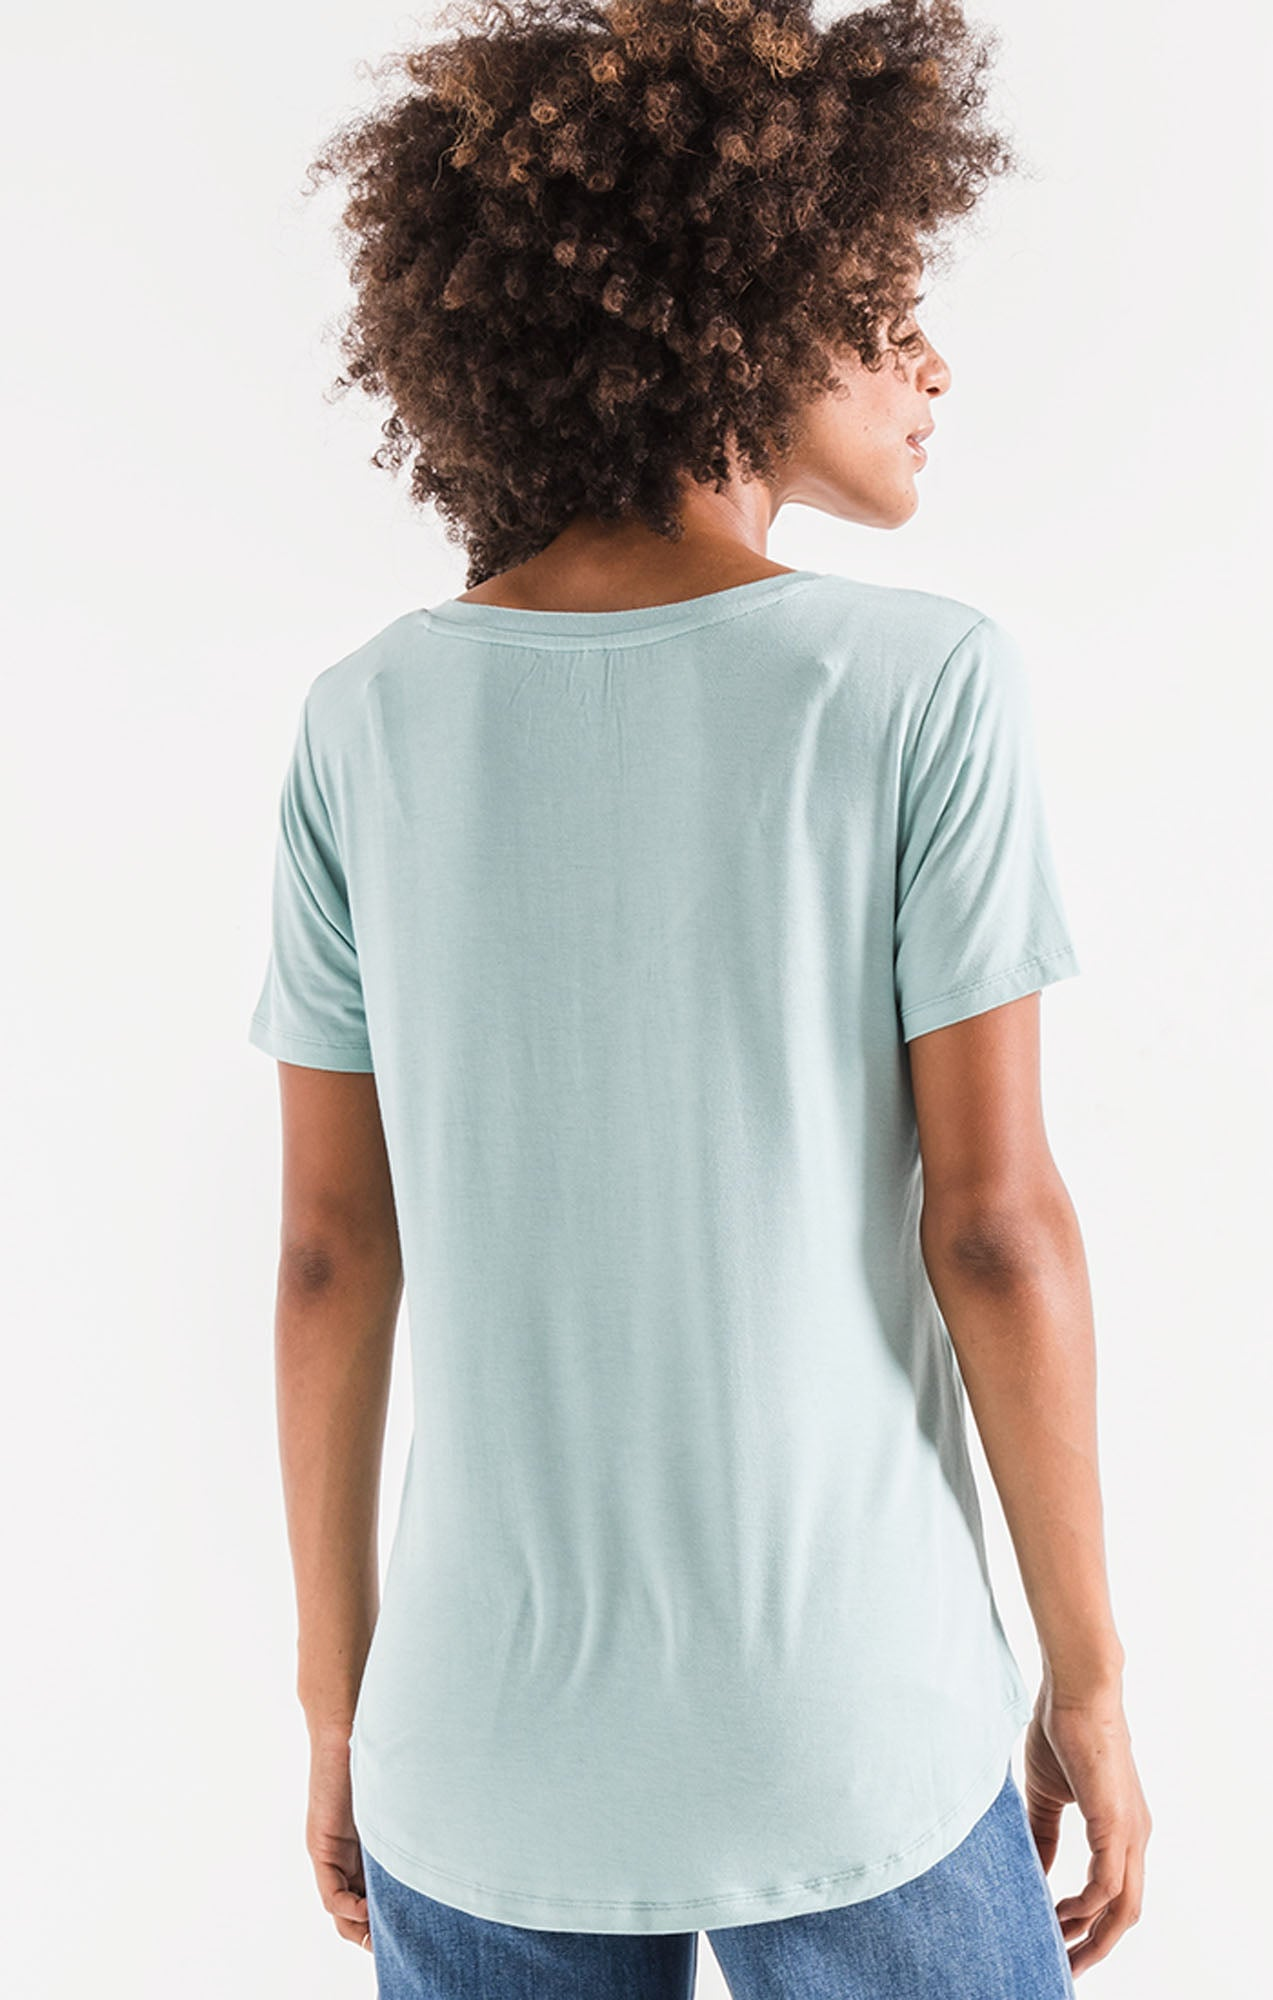 Tops Sleek Jersey Pocket Tee Fair Aqua